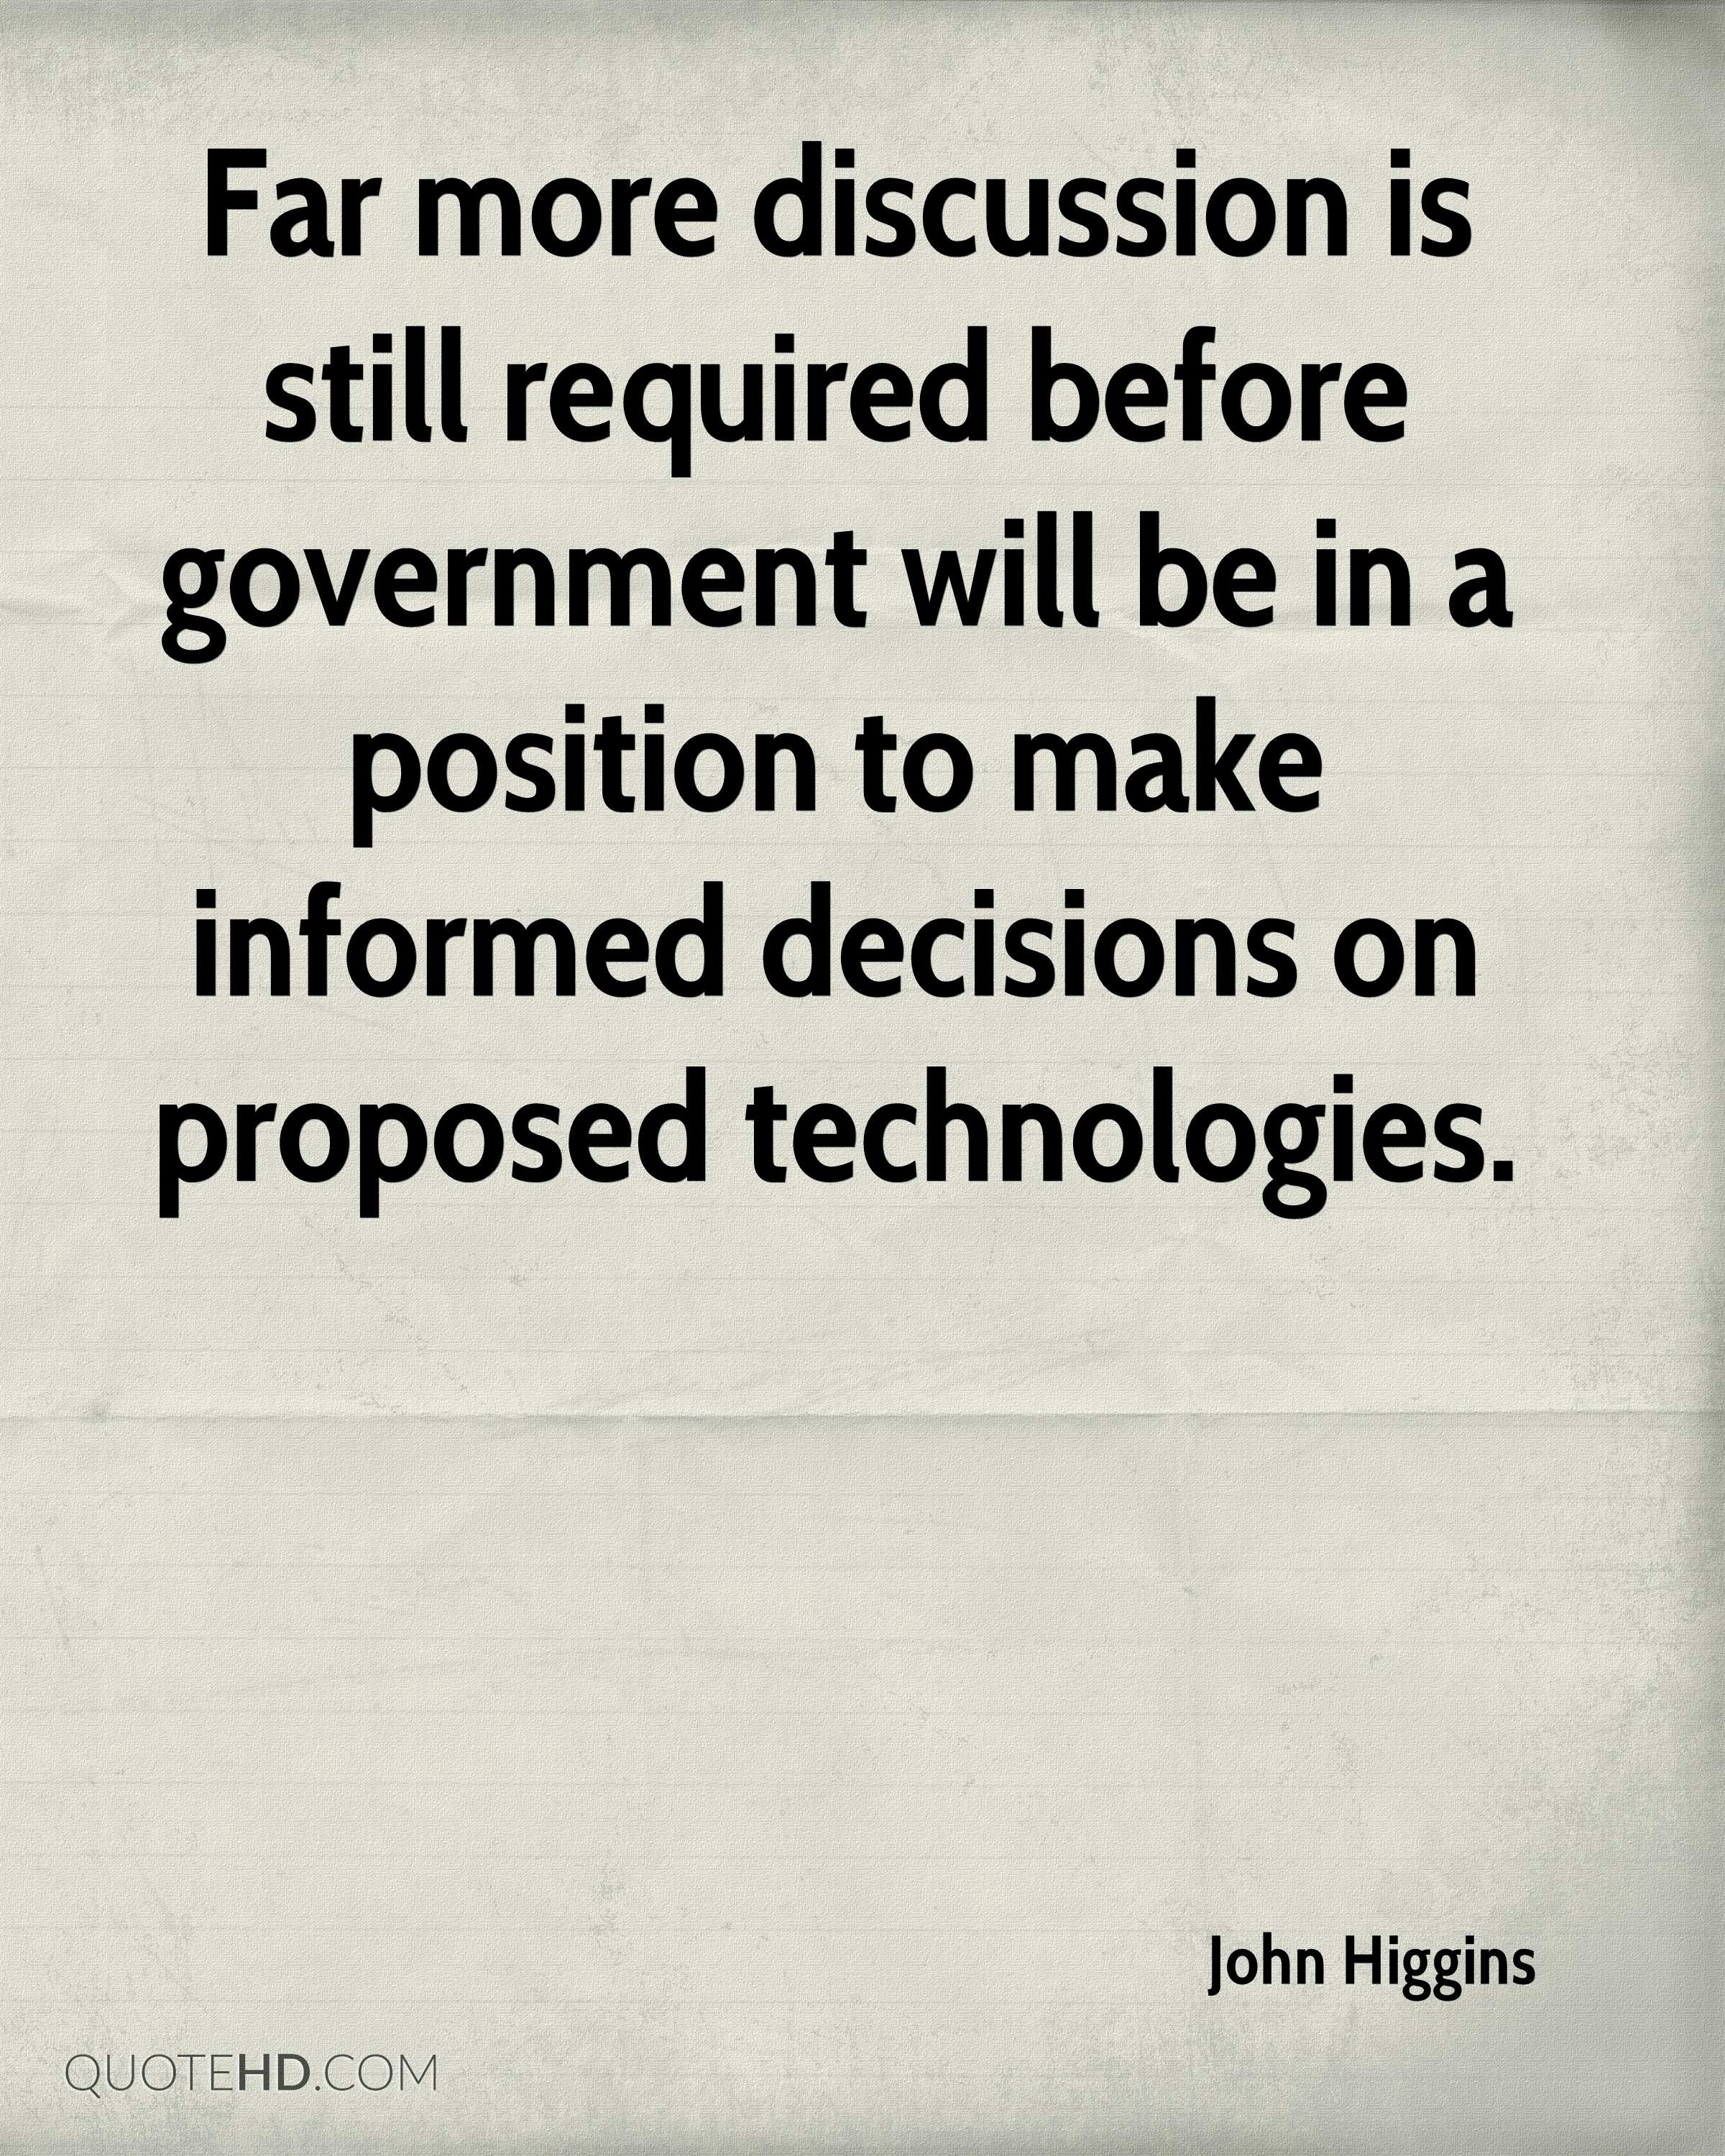 Far more discussion is still required before government will be in a position to make informed decisions on proposed technologies.